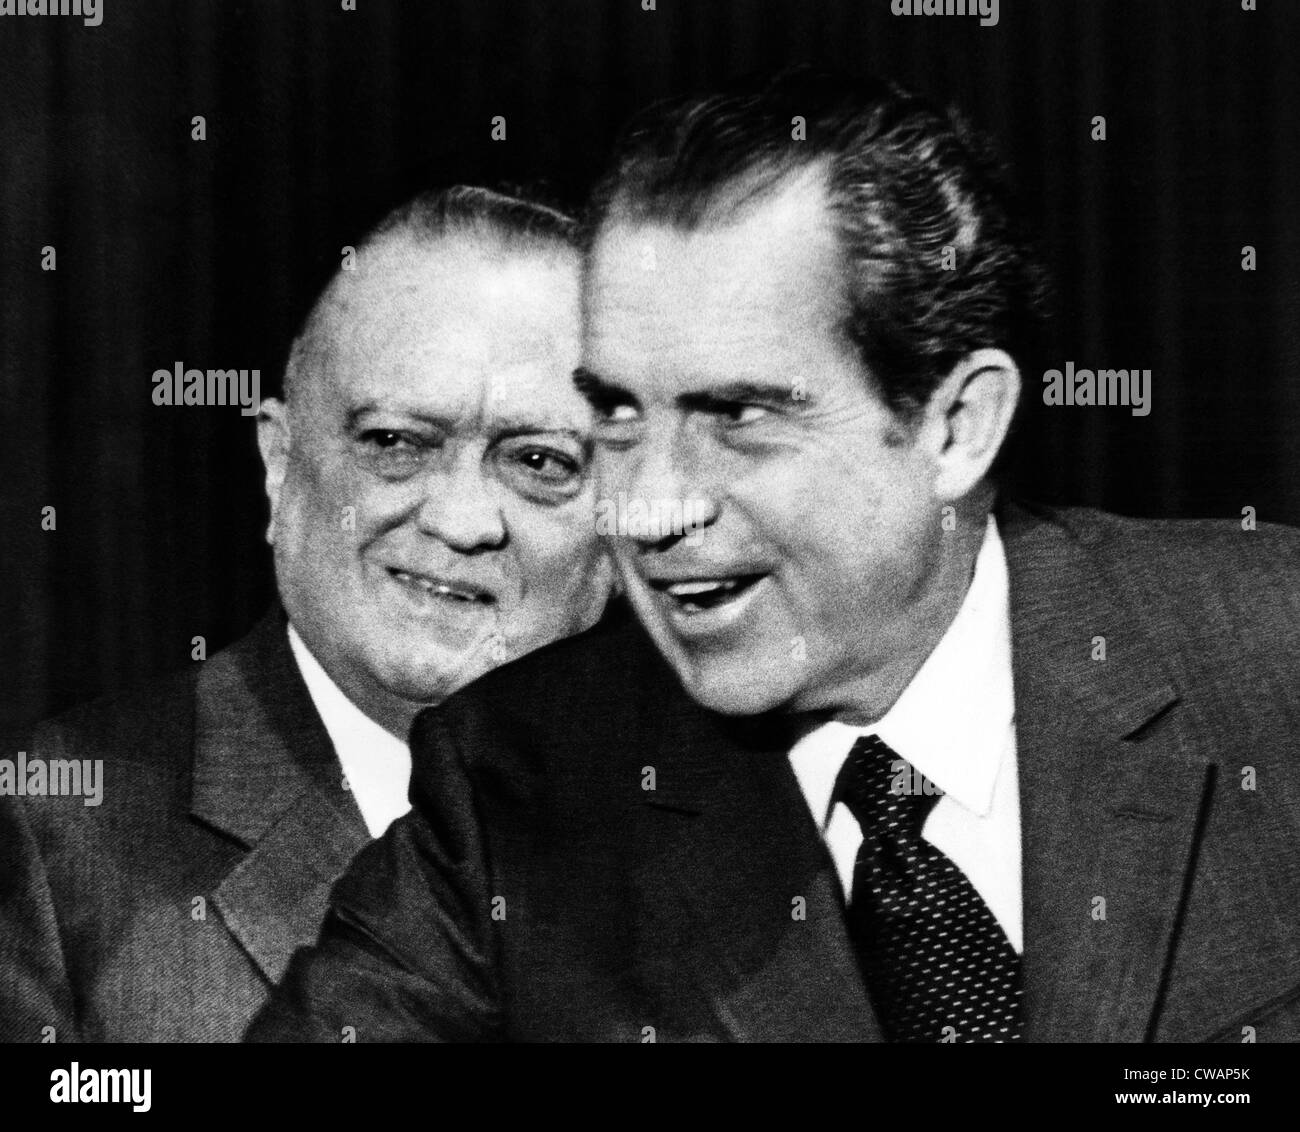 J. Edgar Hoover with President Richard M. Nixon, June 30, 1971. Courtesy CSU Archives/Everett Collection. - Stock Image